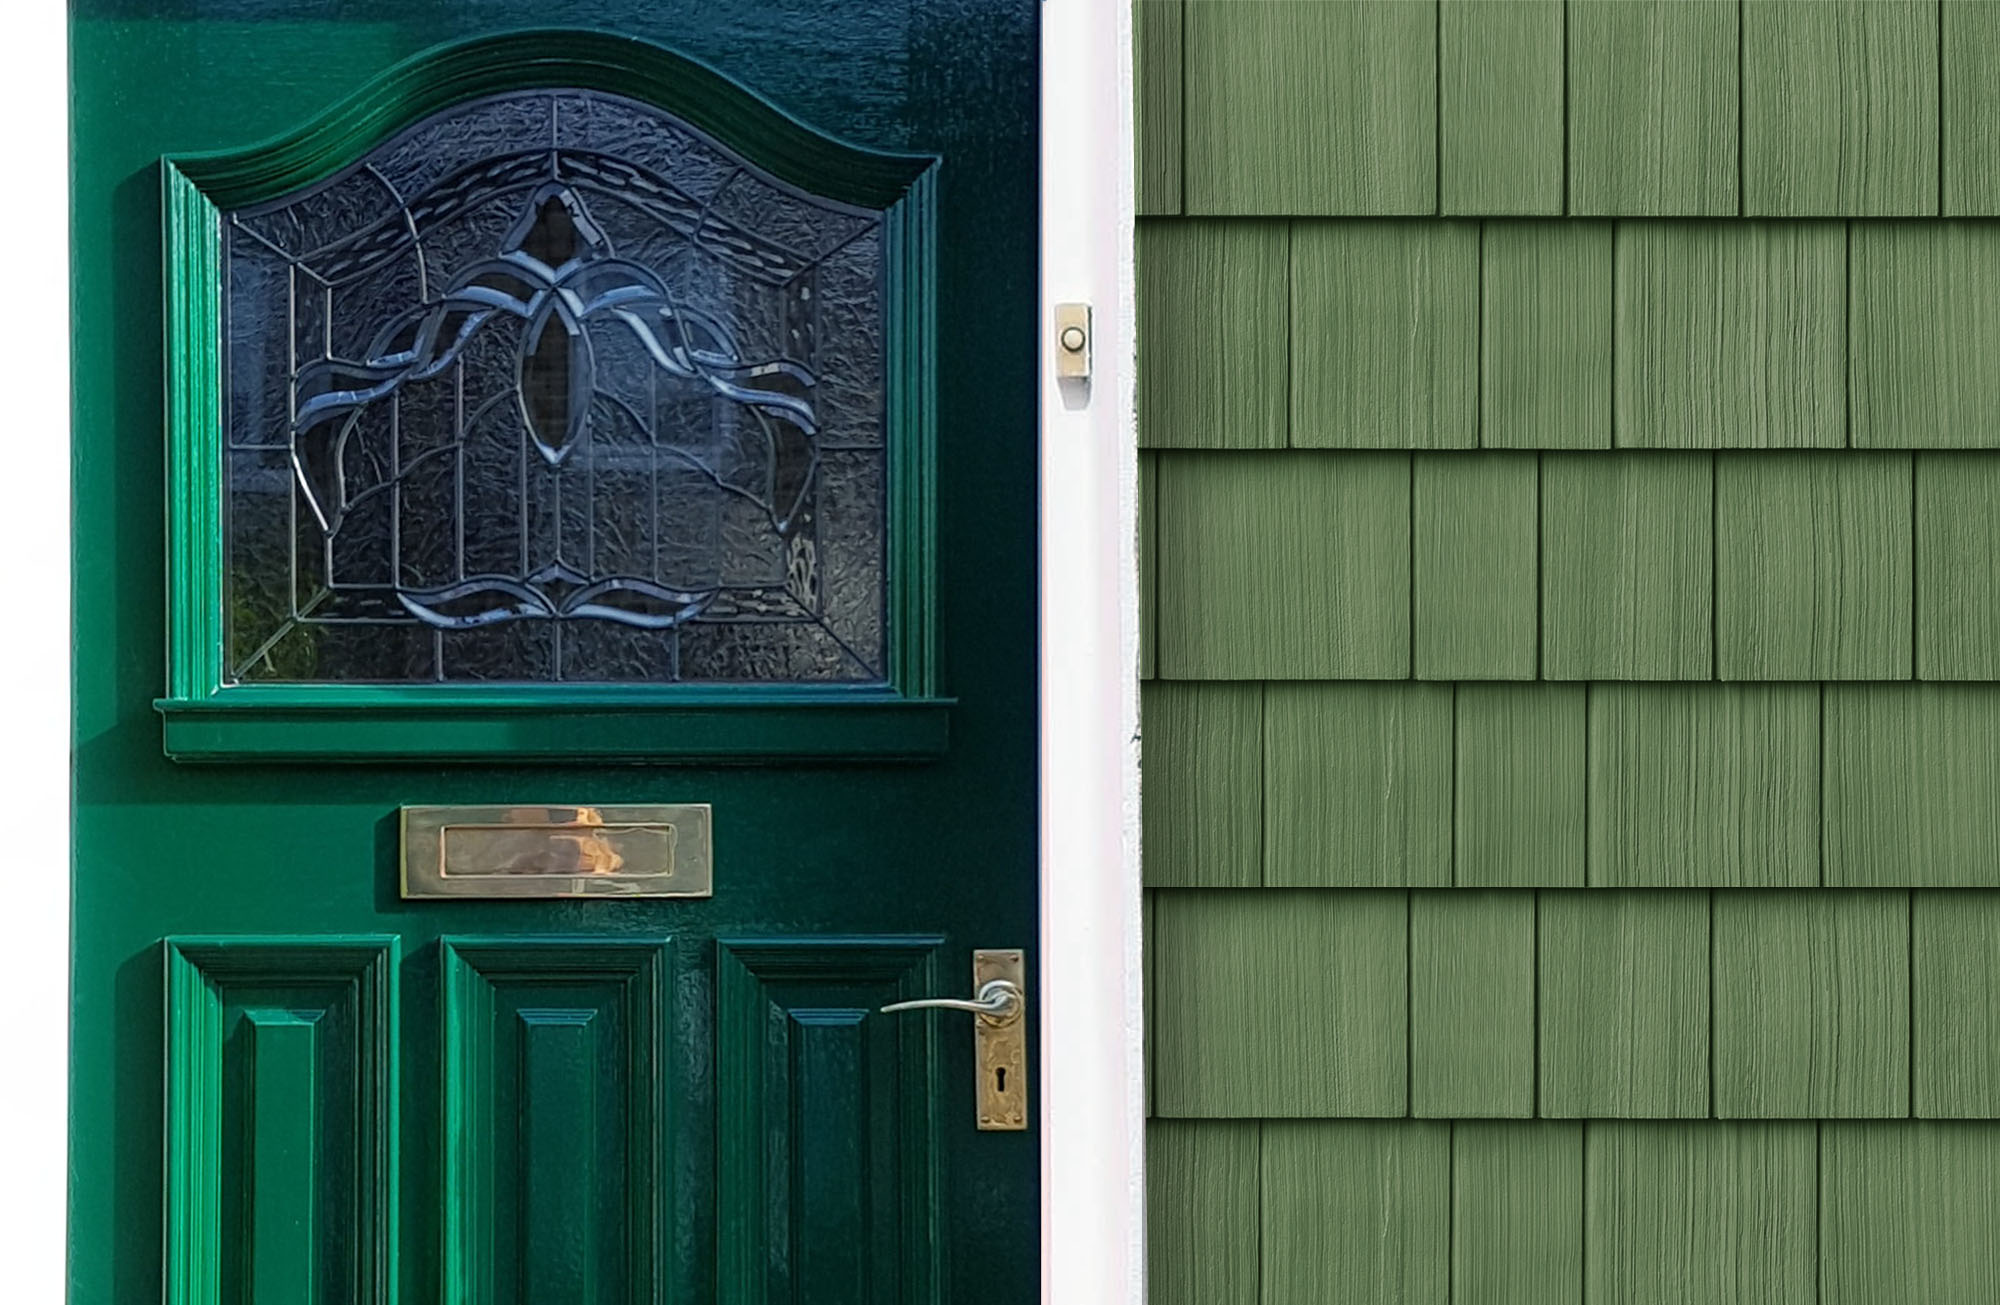 Green front door with green cedar shake siding and white trim with gold hardware.